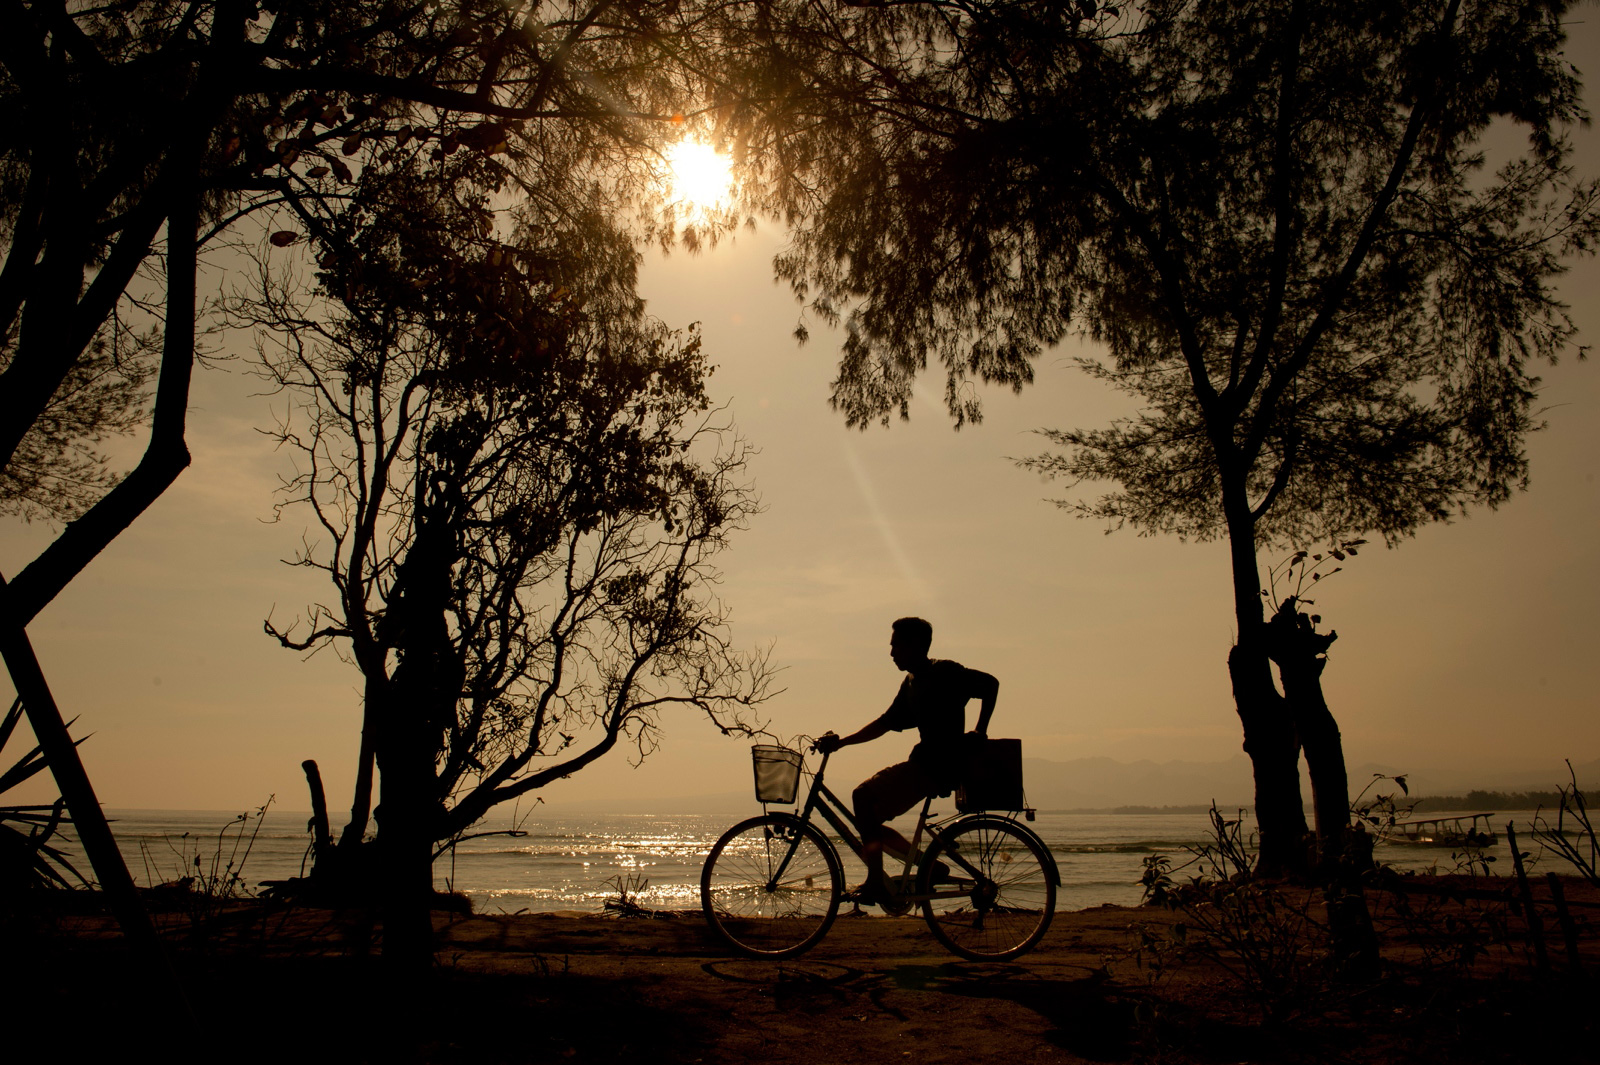 Gili-Islands-South-African-Travel-Photographer-Jacki-Bruniquel-012